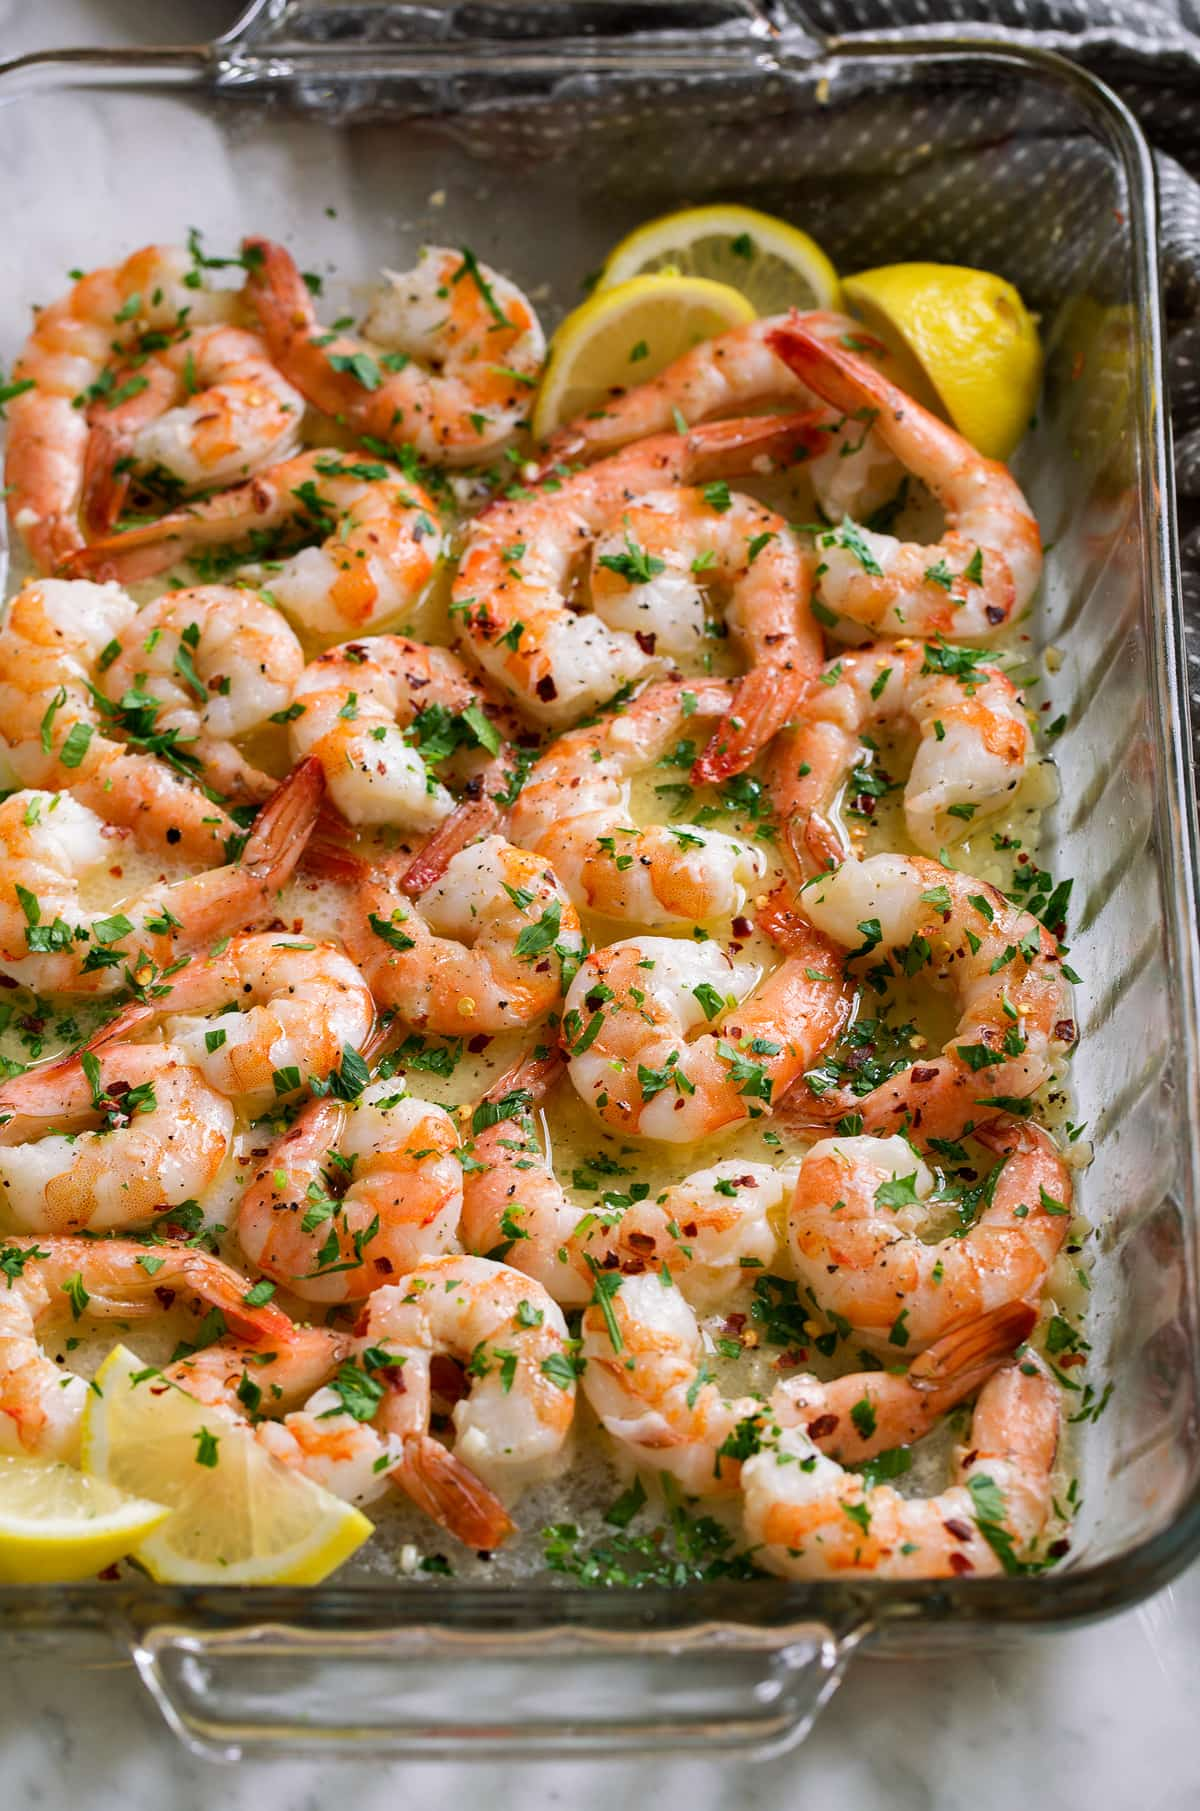 Glass baking dish filled with bake shrimp and garlic butter sauce, garnished with parsley and lemon wedges.